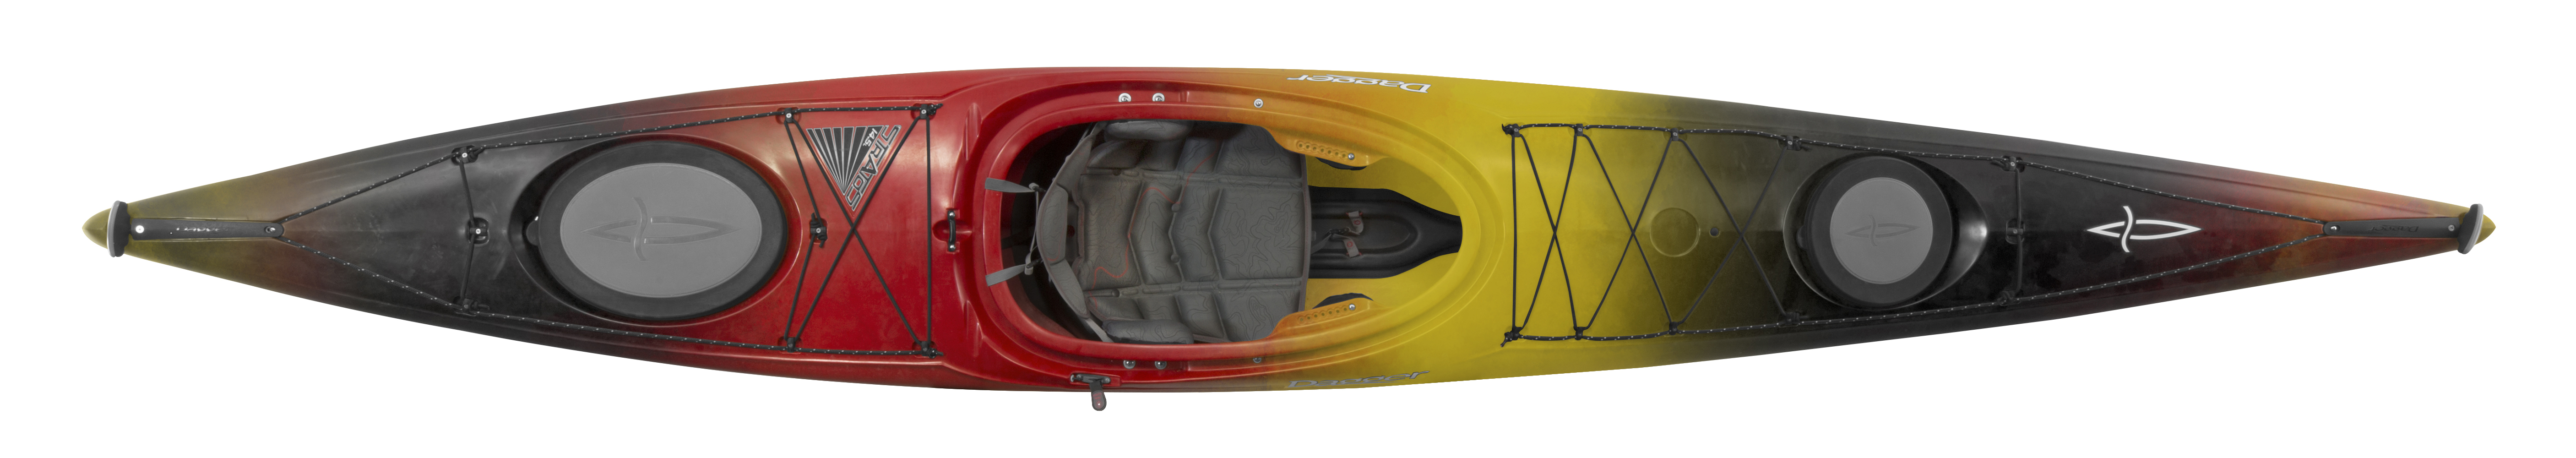 Kayaks: STRATOS 14.5 L by Dagger - Image 4473